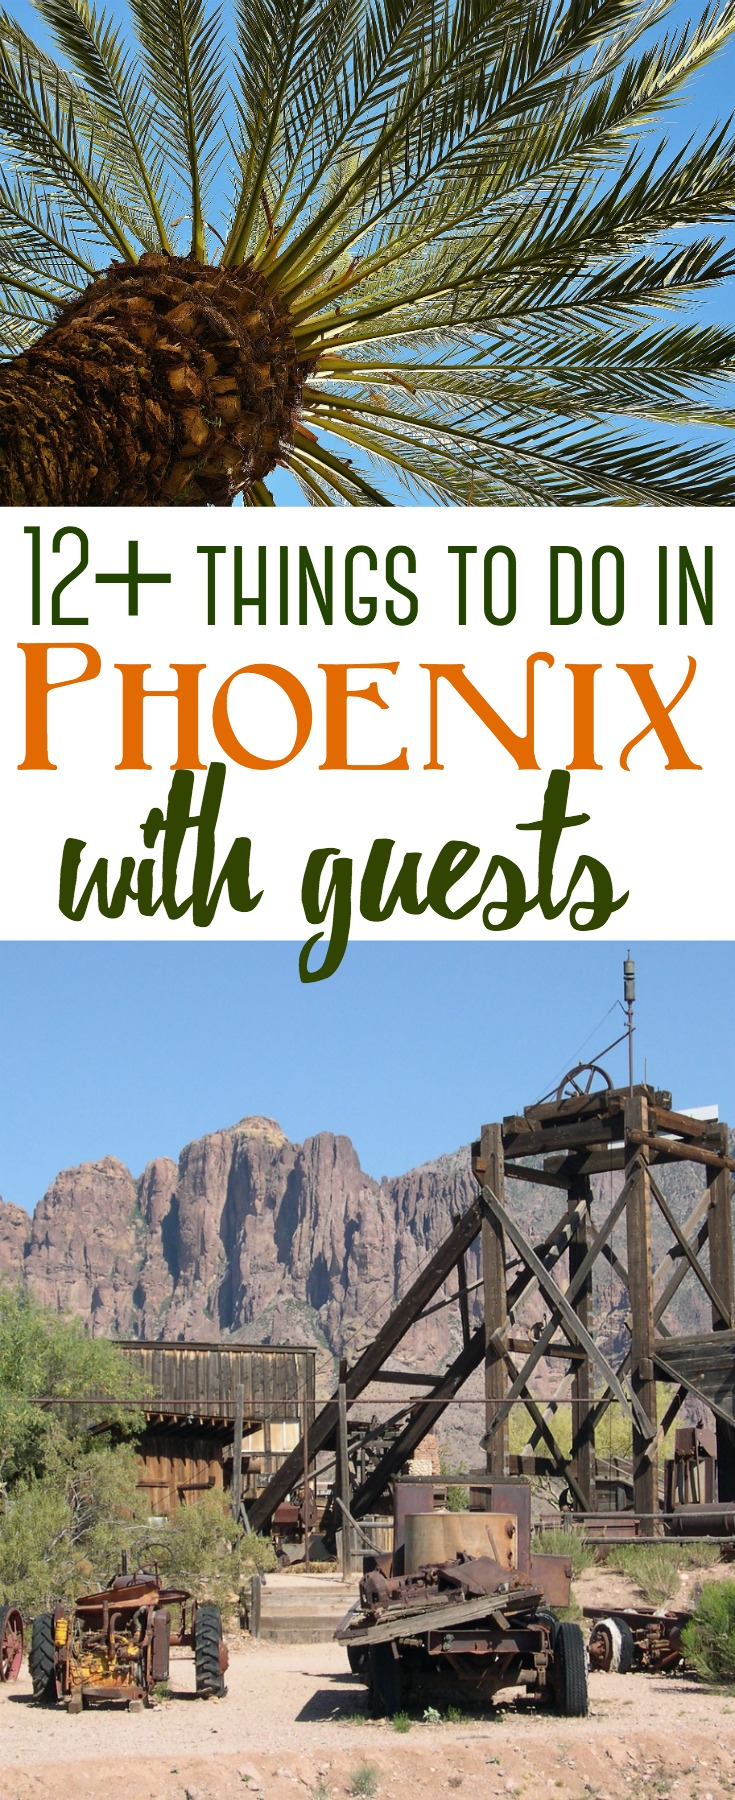 Phoenix is full of unique attractions for out of town visitors. Here are over a dozen things to do that will showcase Arizona's history to family and friends who may come to visit. #Phoenix #Southwest #Arizona #AZ #attractions #thingstodo #familyfriendly